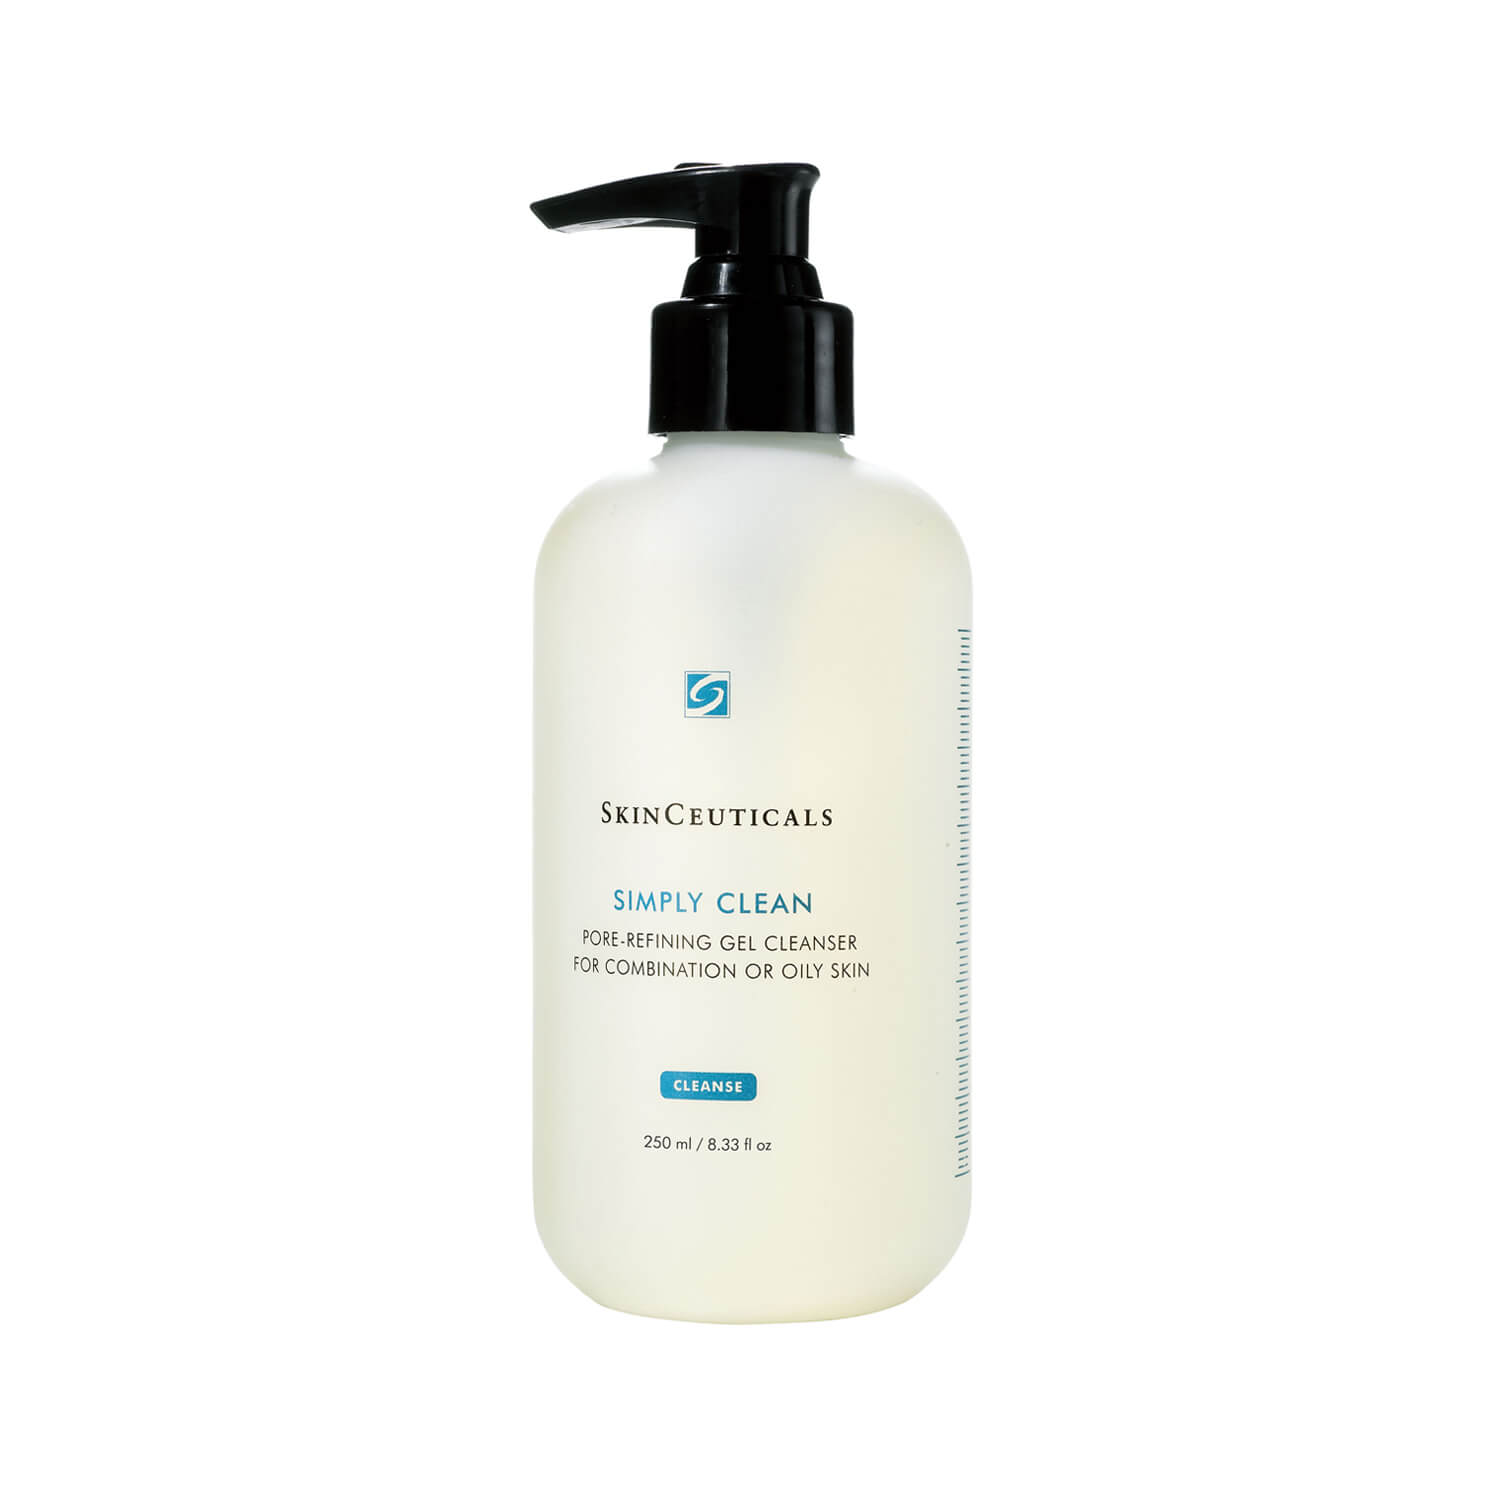 skinceuticals simply clean reviews